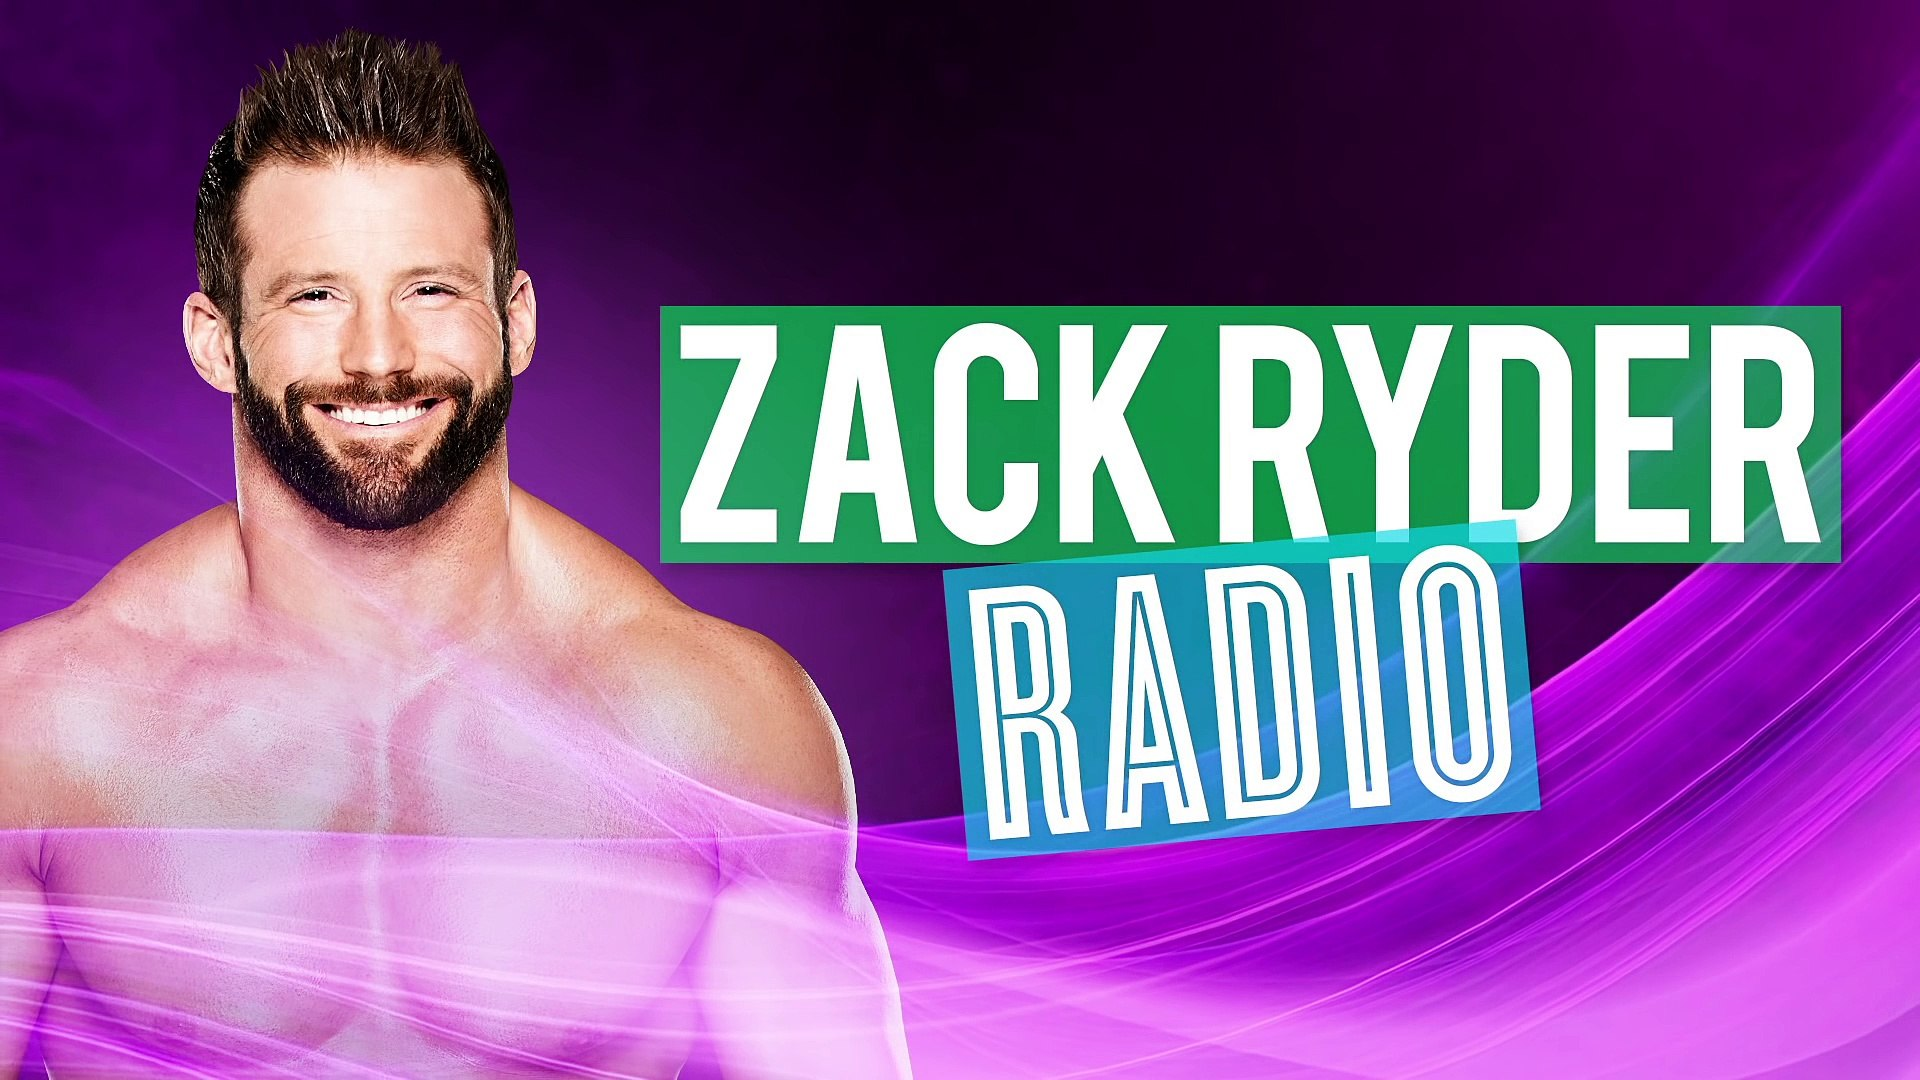 Zack Ryder: Radio (Official Theme)